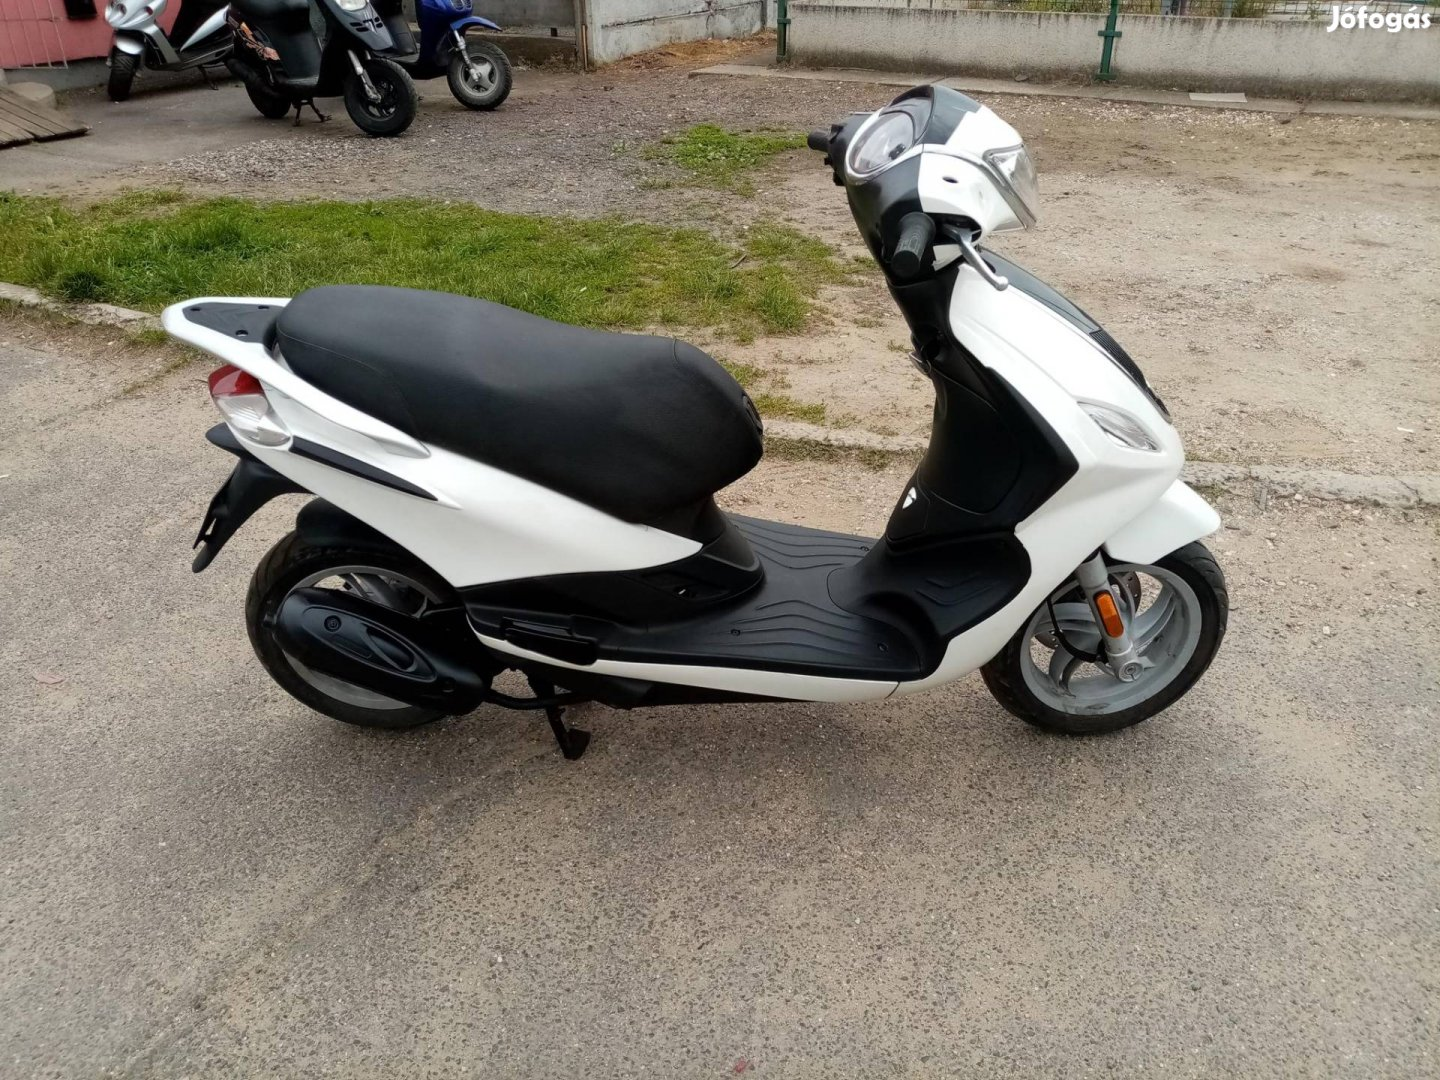 Piaggio Fly 50 4t karbis